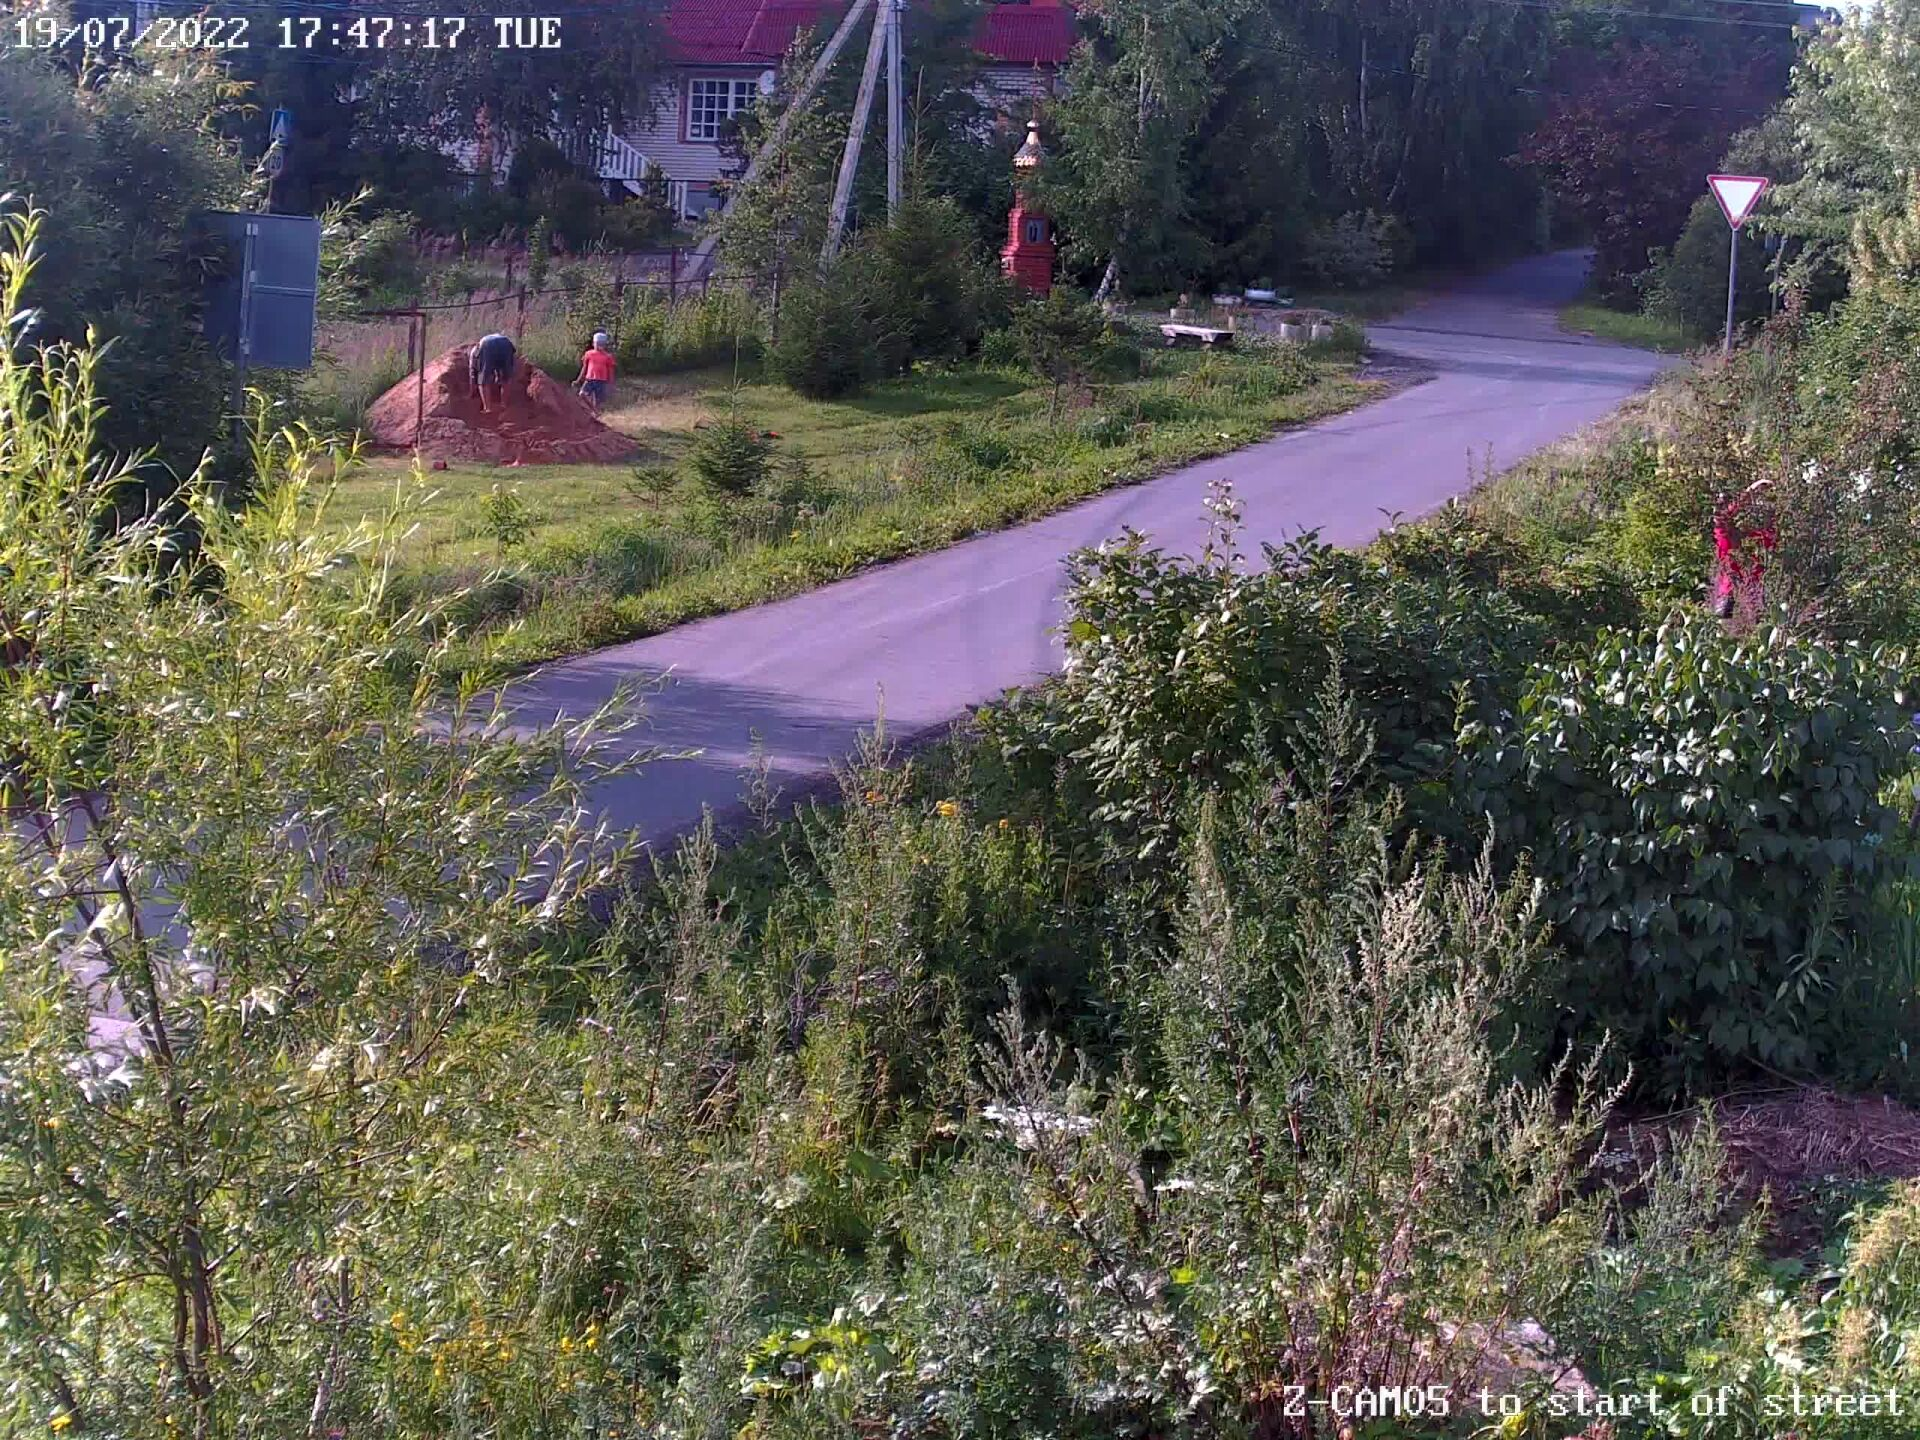 Webcam Dubl house (vid on dom), Ashukino, Moscow Region, Russia